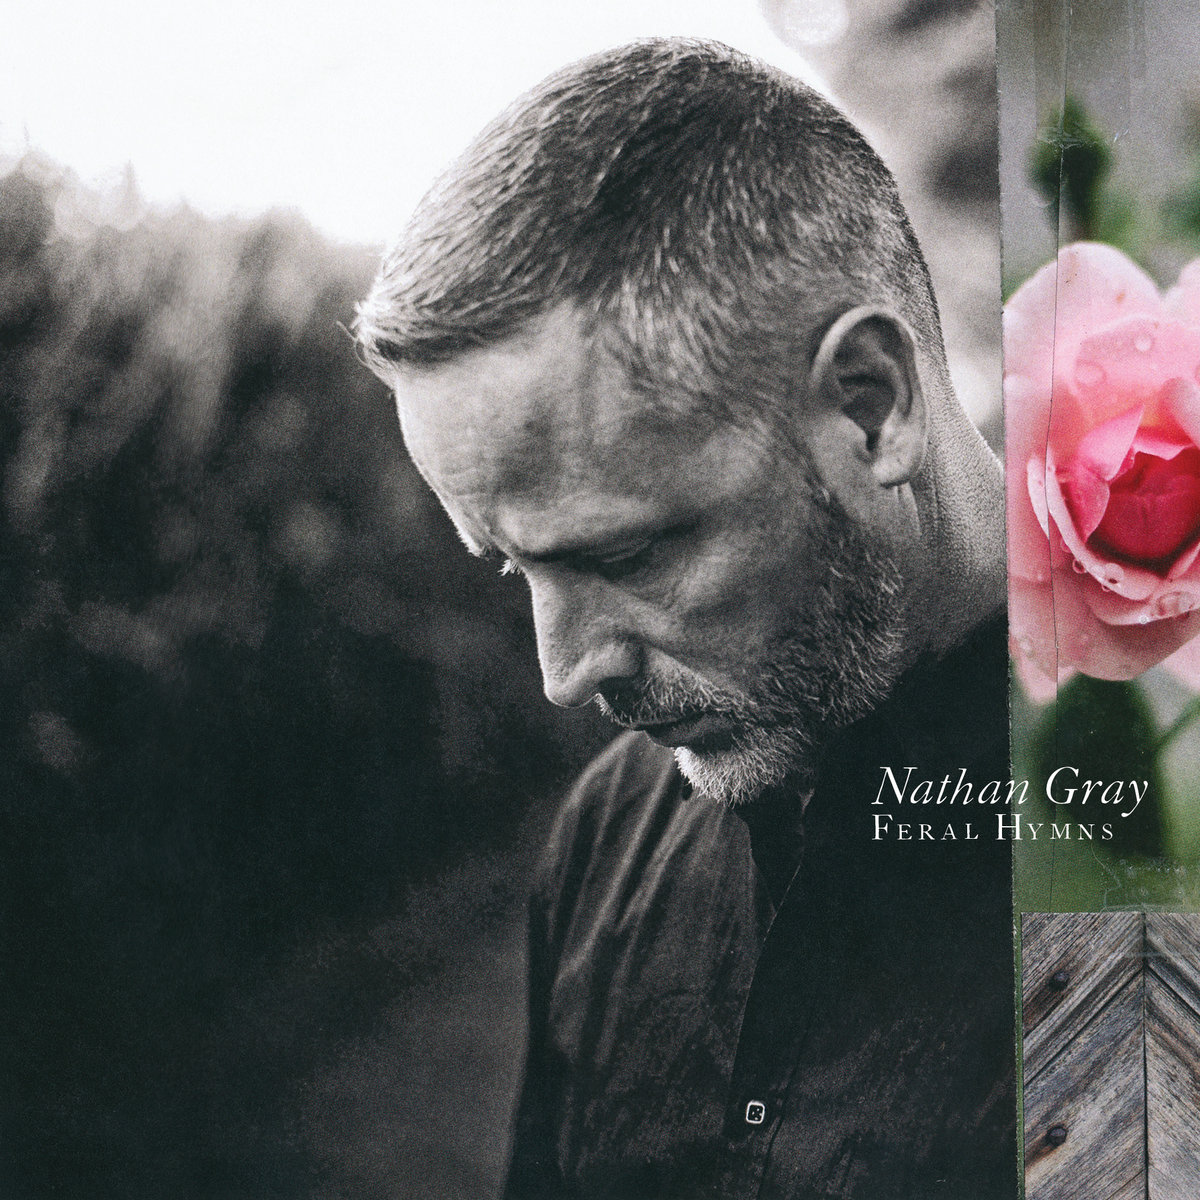 Nathan Gray Feral hymns